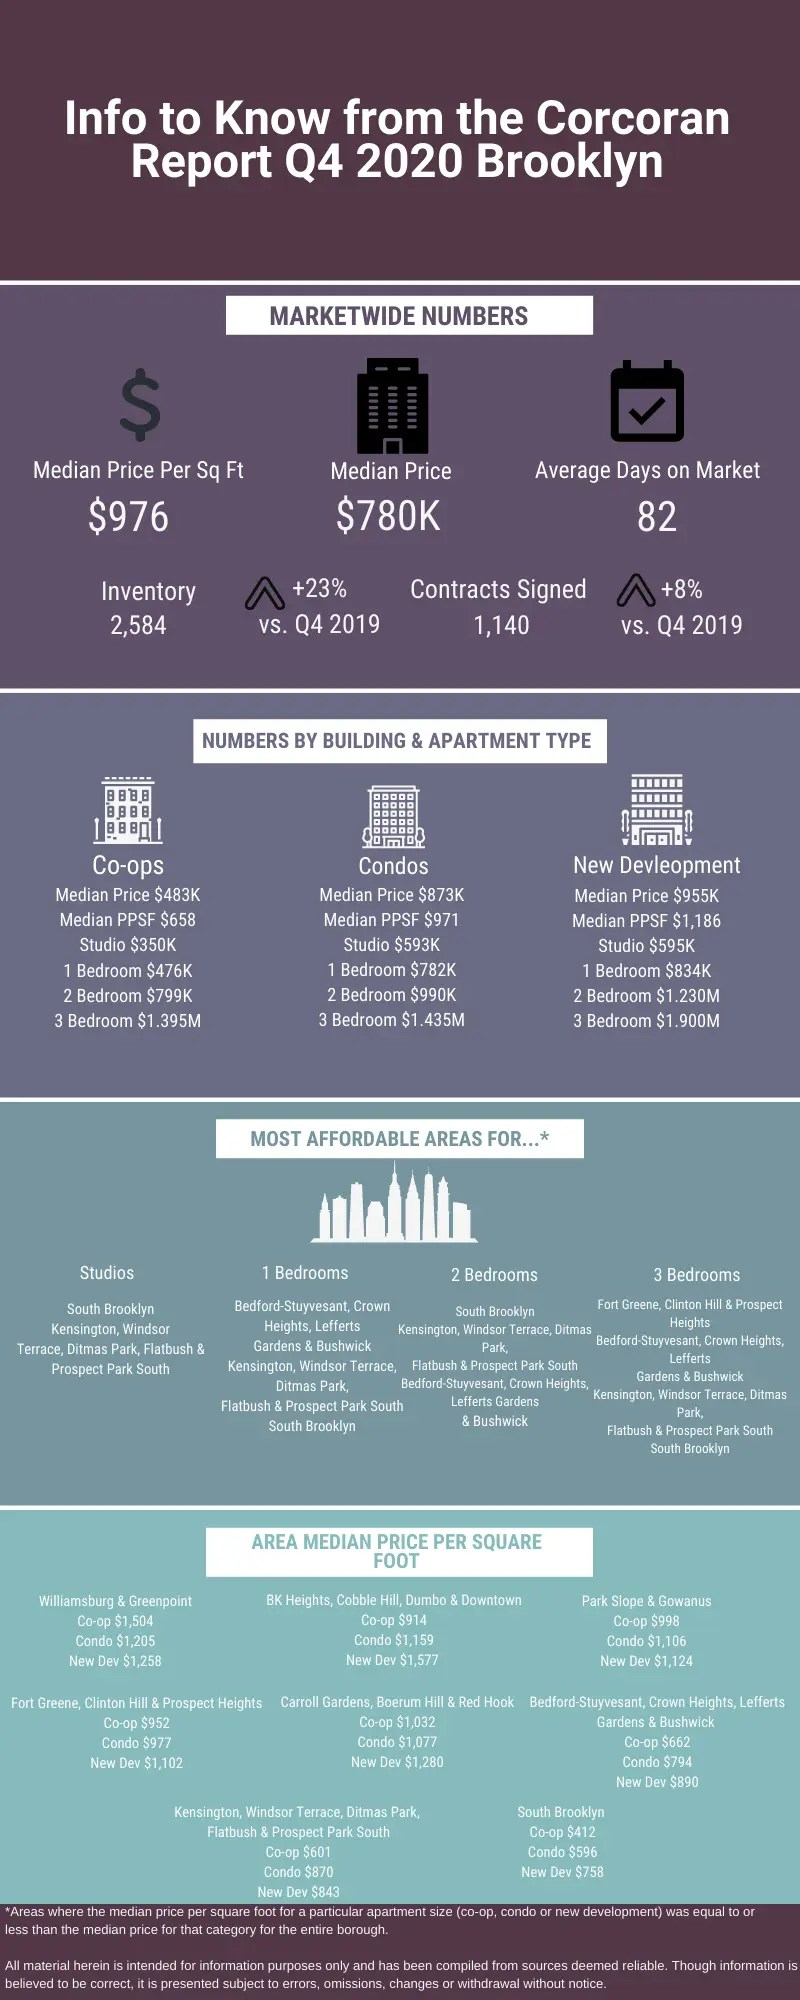 Infographic with data about the Manhattan sales